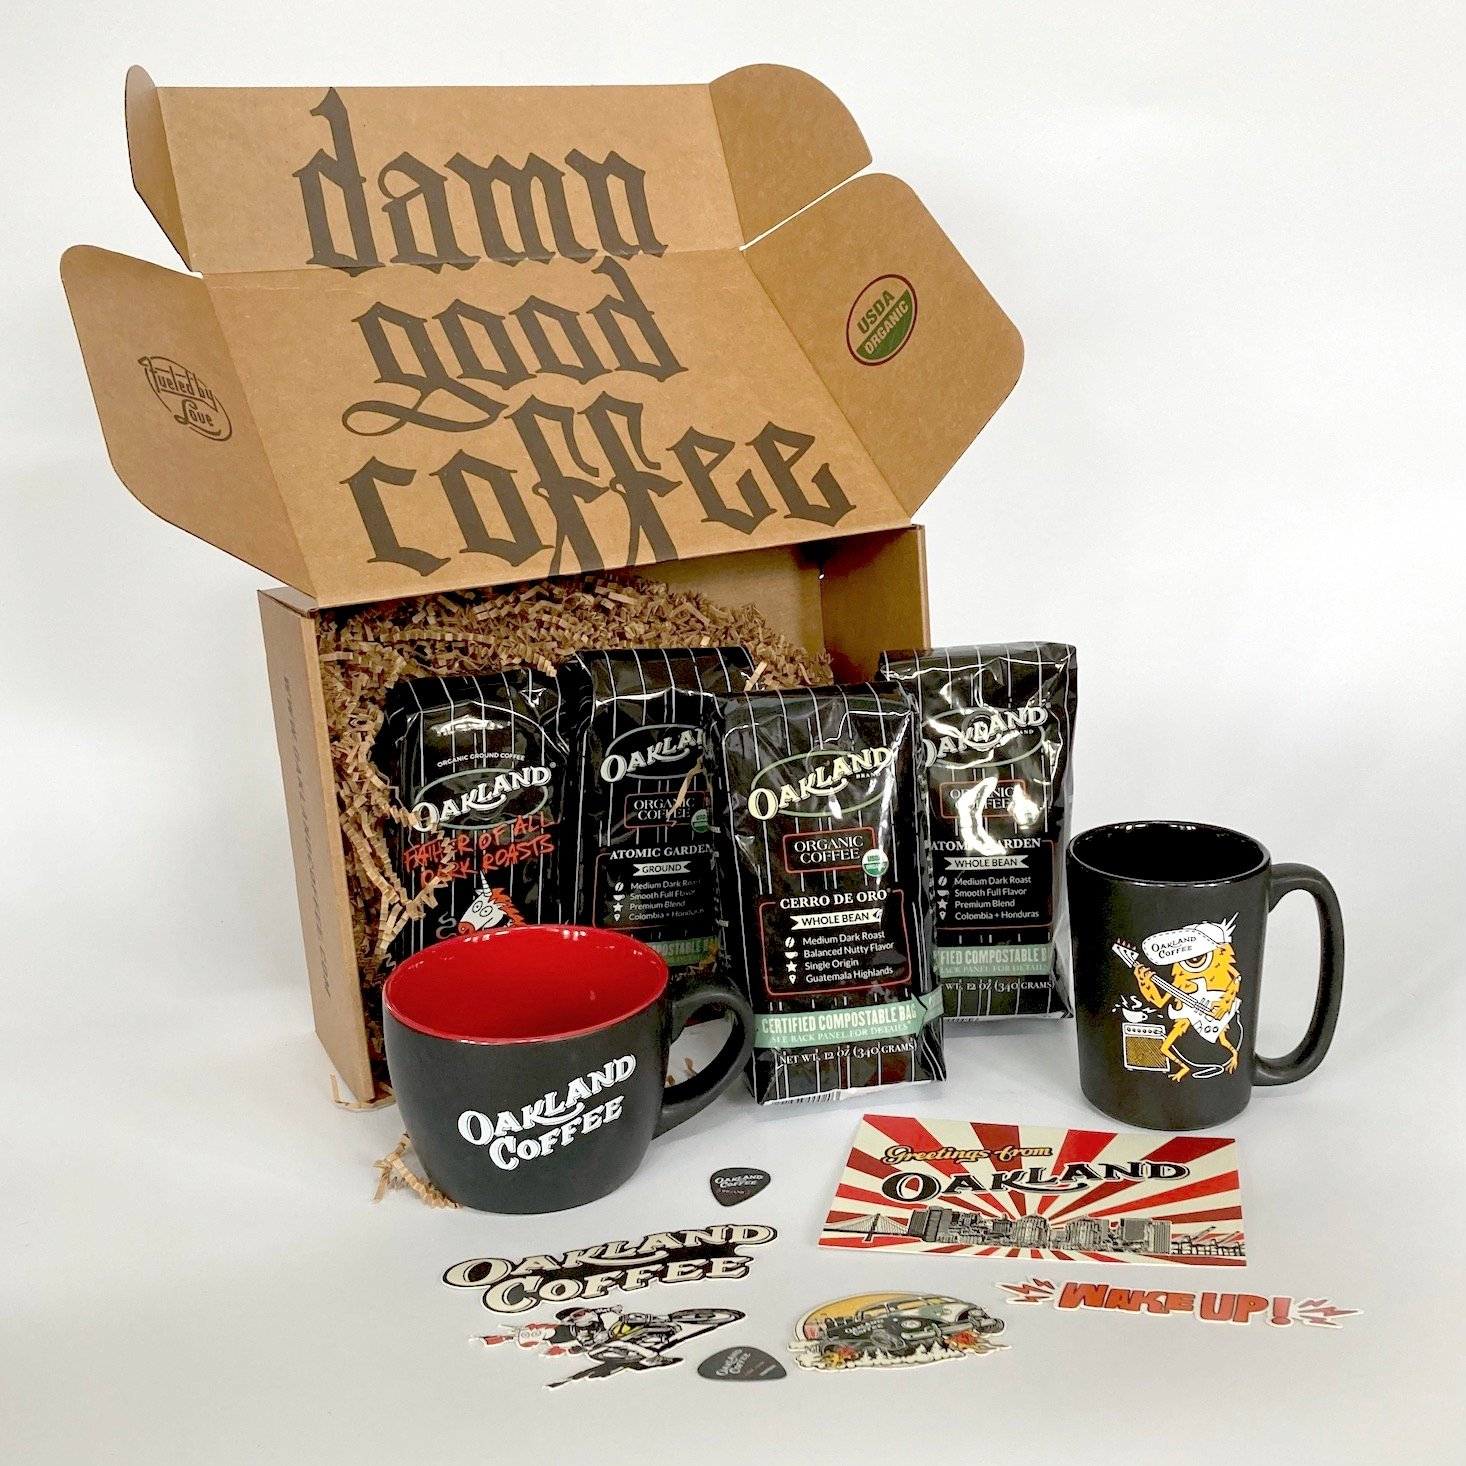 Oakland Coffee Club Review – A Green Coffee Subscription From the Band Green Day